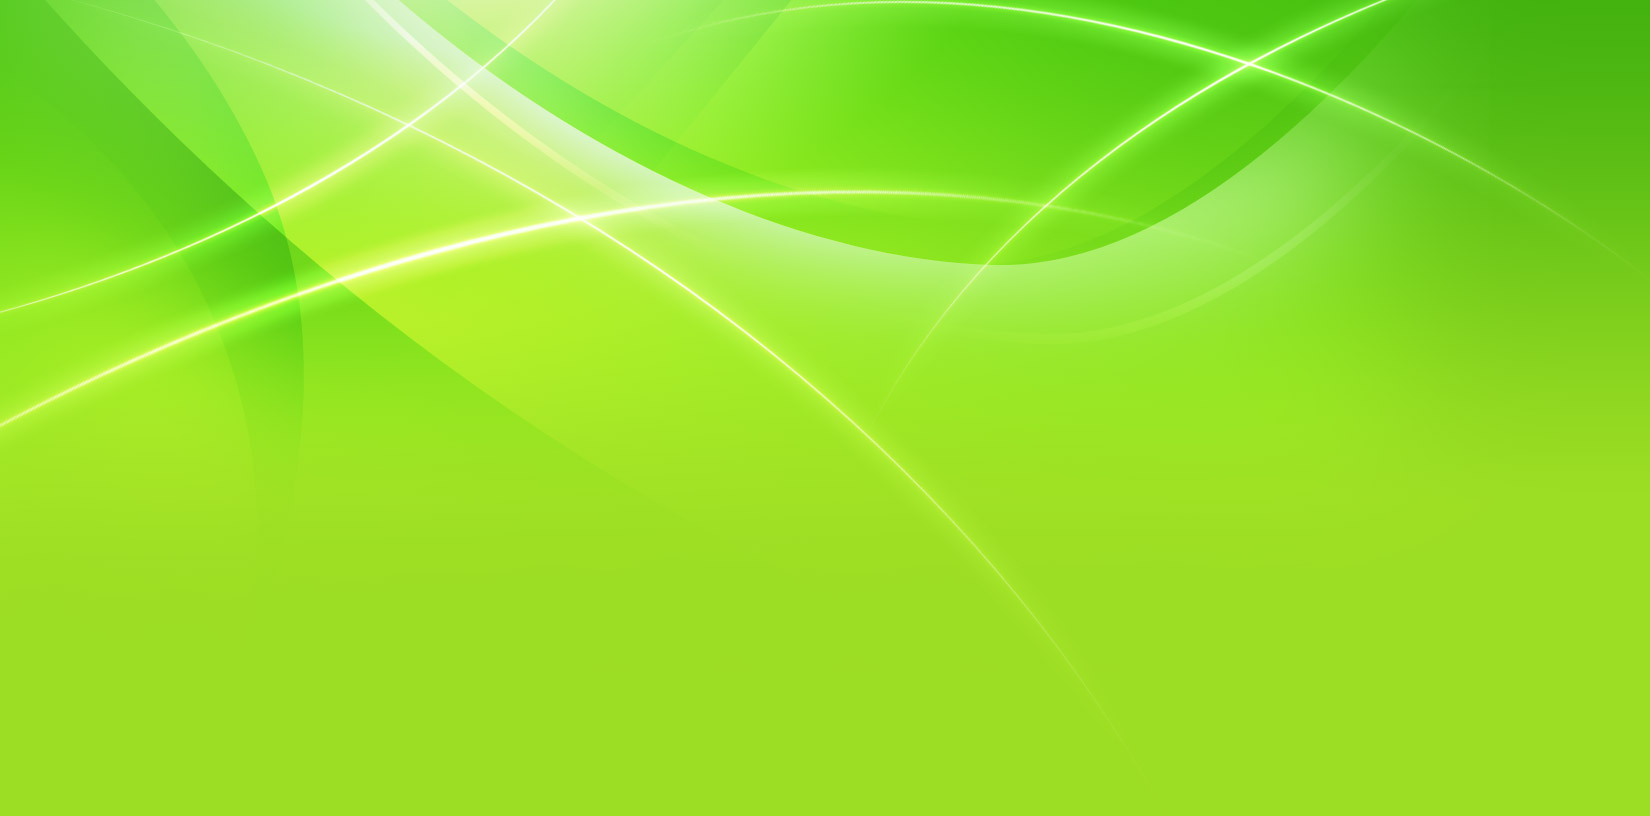 Green background clipart #8